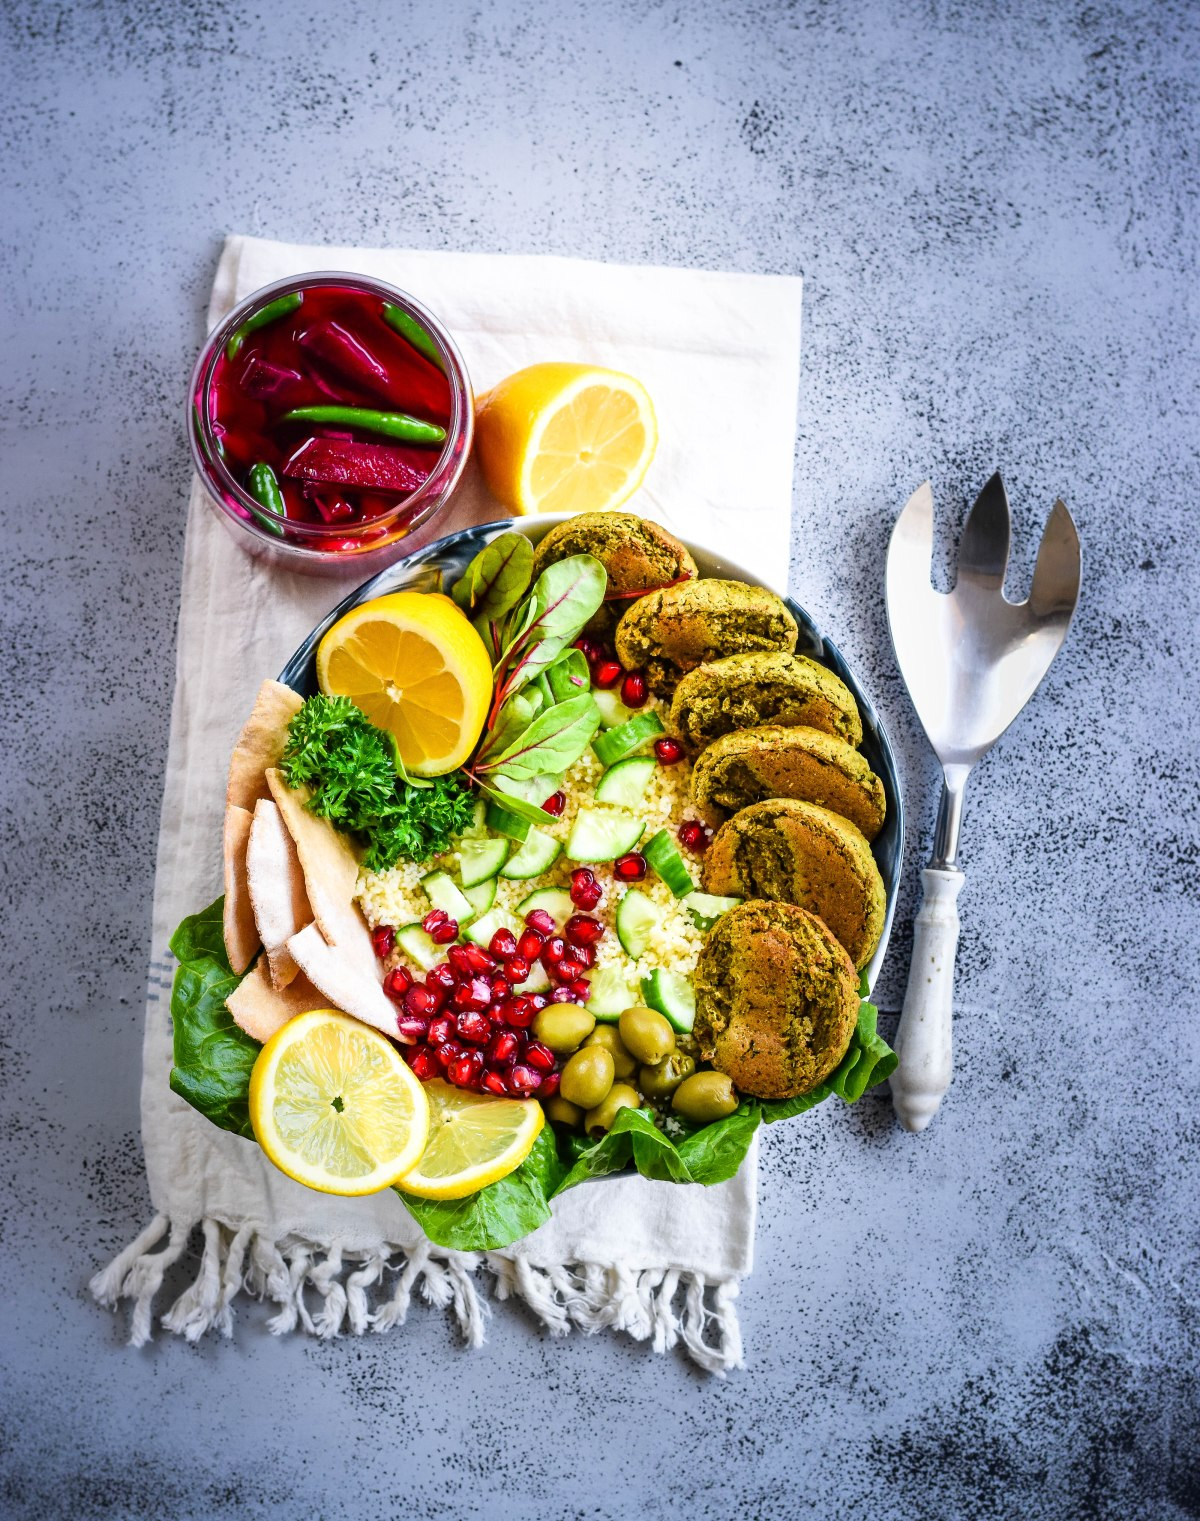 Green Falafel Meal Bowl – with lemon couscous and pita chips (Baked)